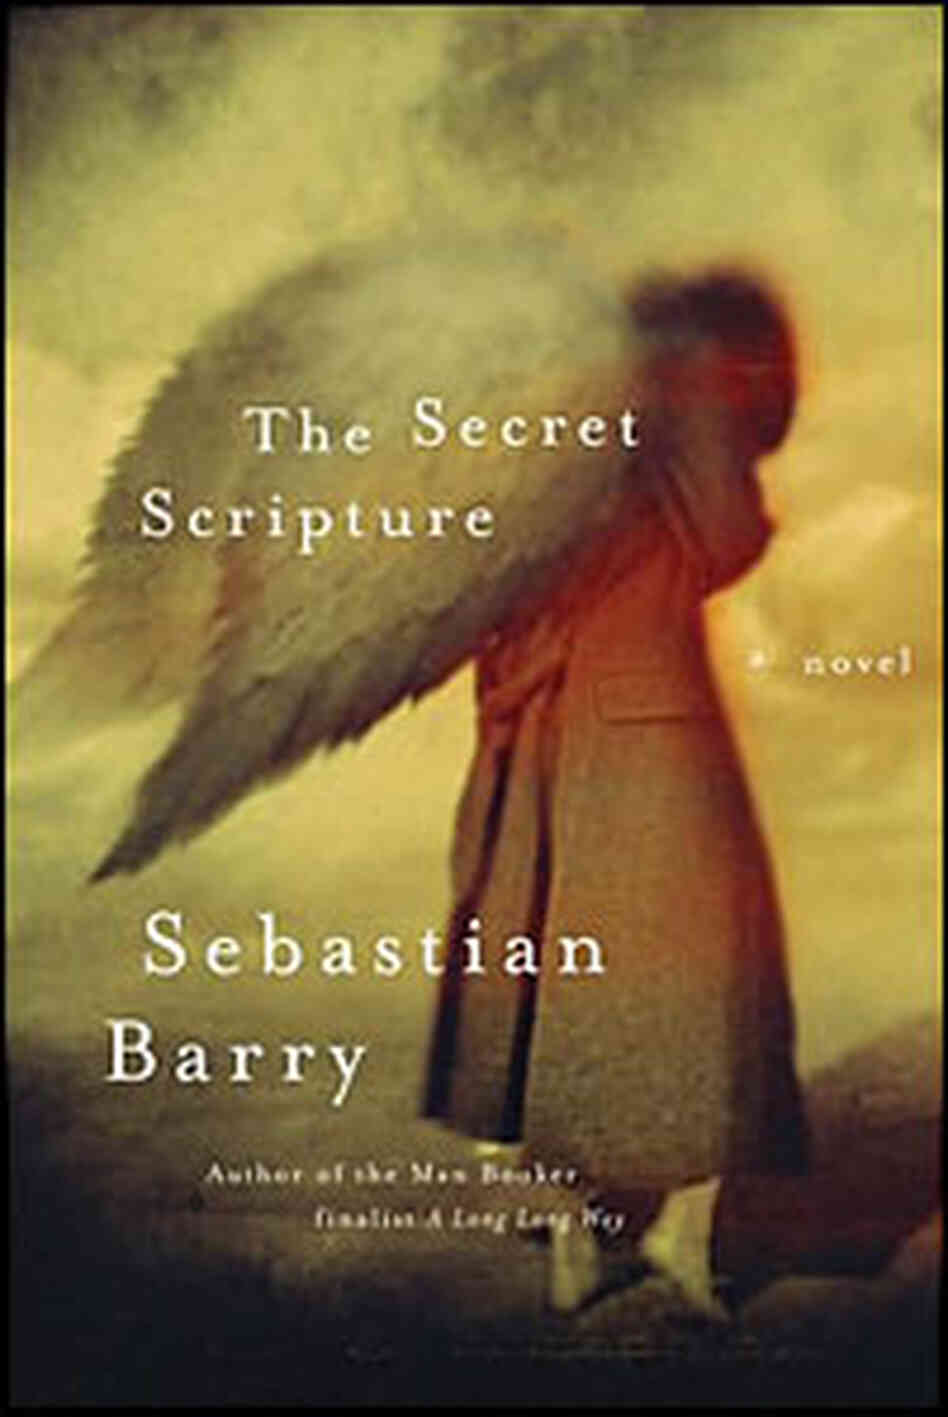 'The Secret Scripture' cover